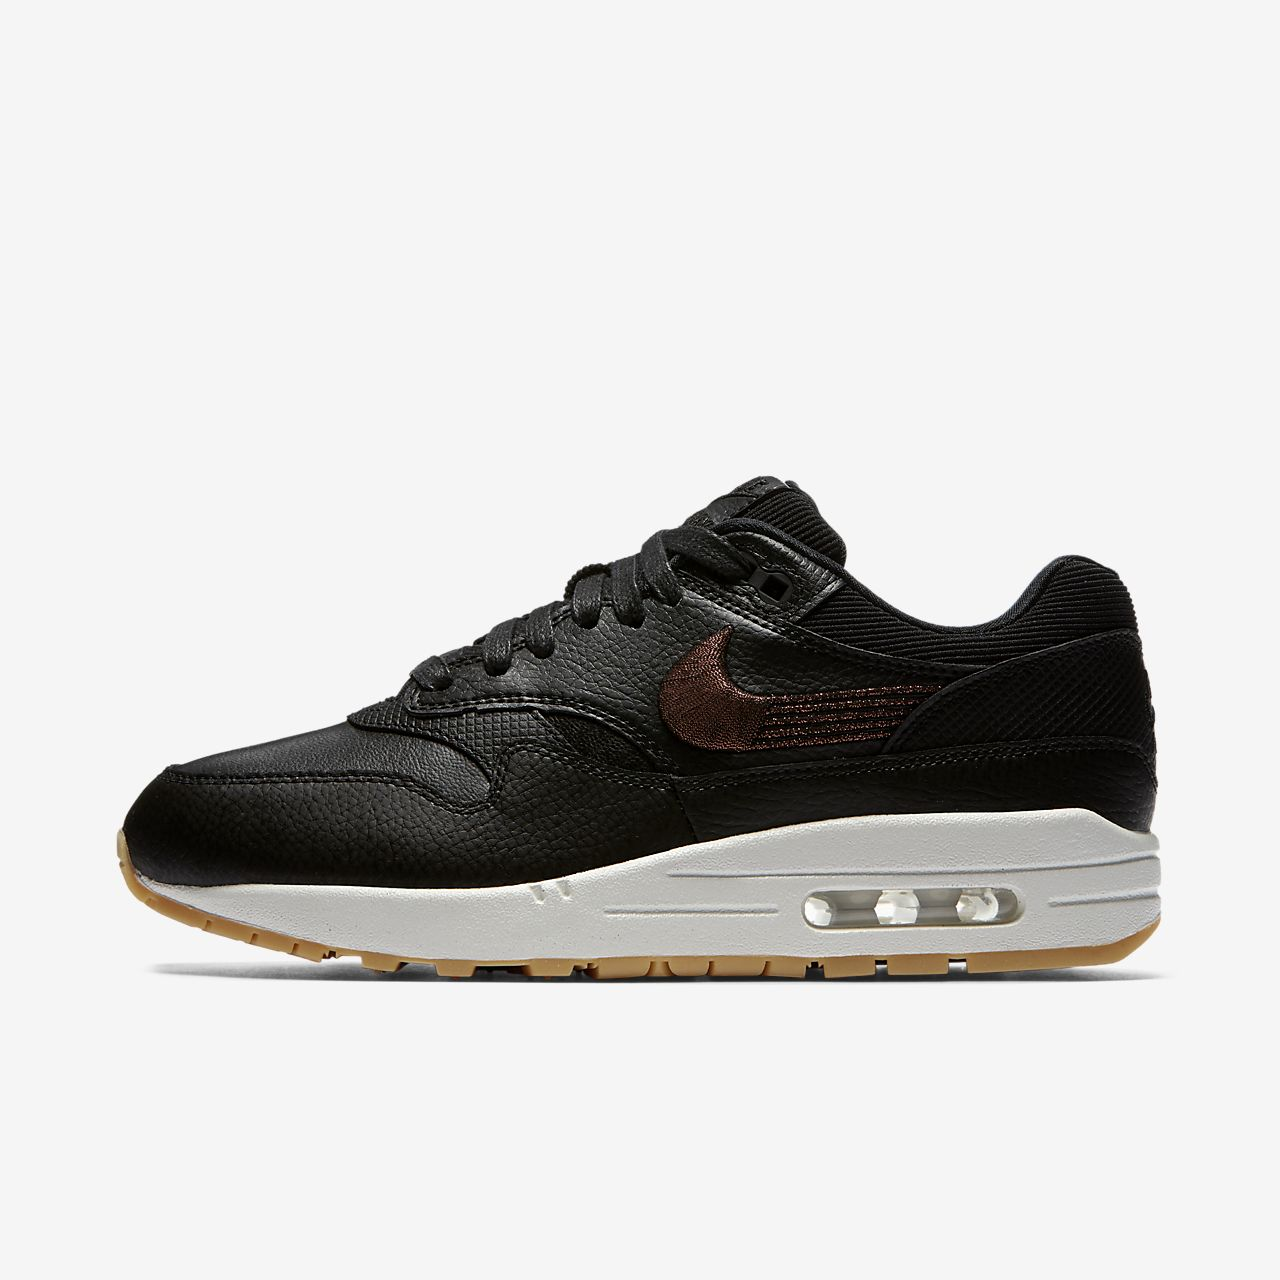 brand new 29ab6 0b319 ... discount code for nike air max 1 premium damesschoen 2b3ce 840f9